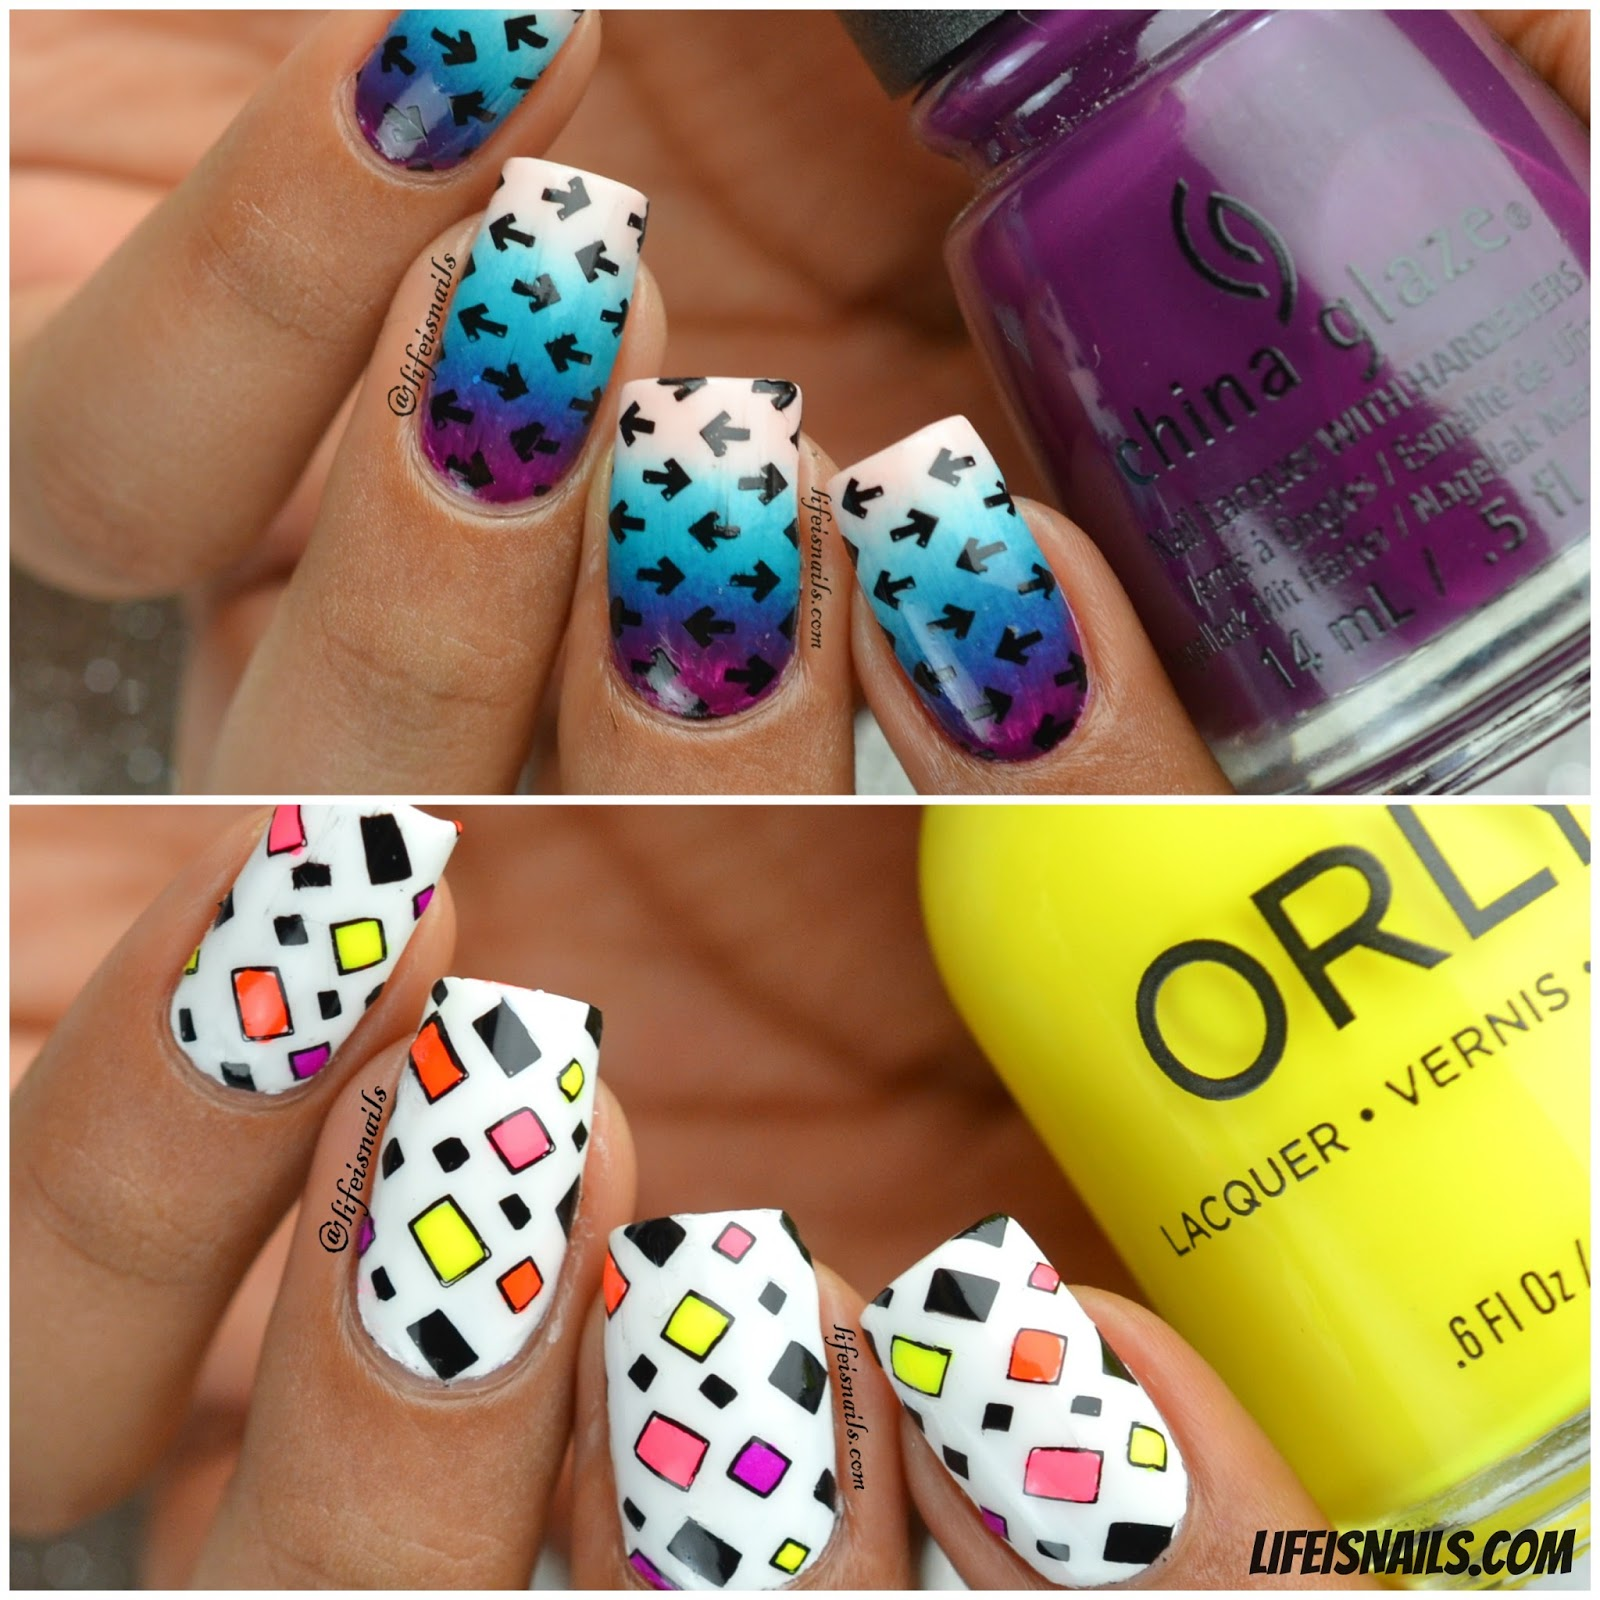 Nail Art & Review - LadyQueen Stamping Plates & Stamper ~ Lifeisnails